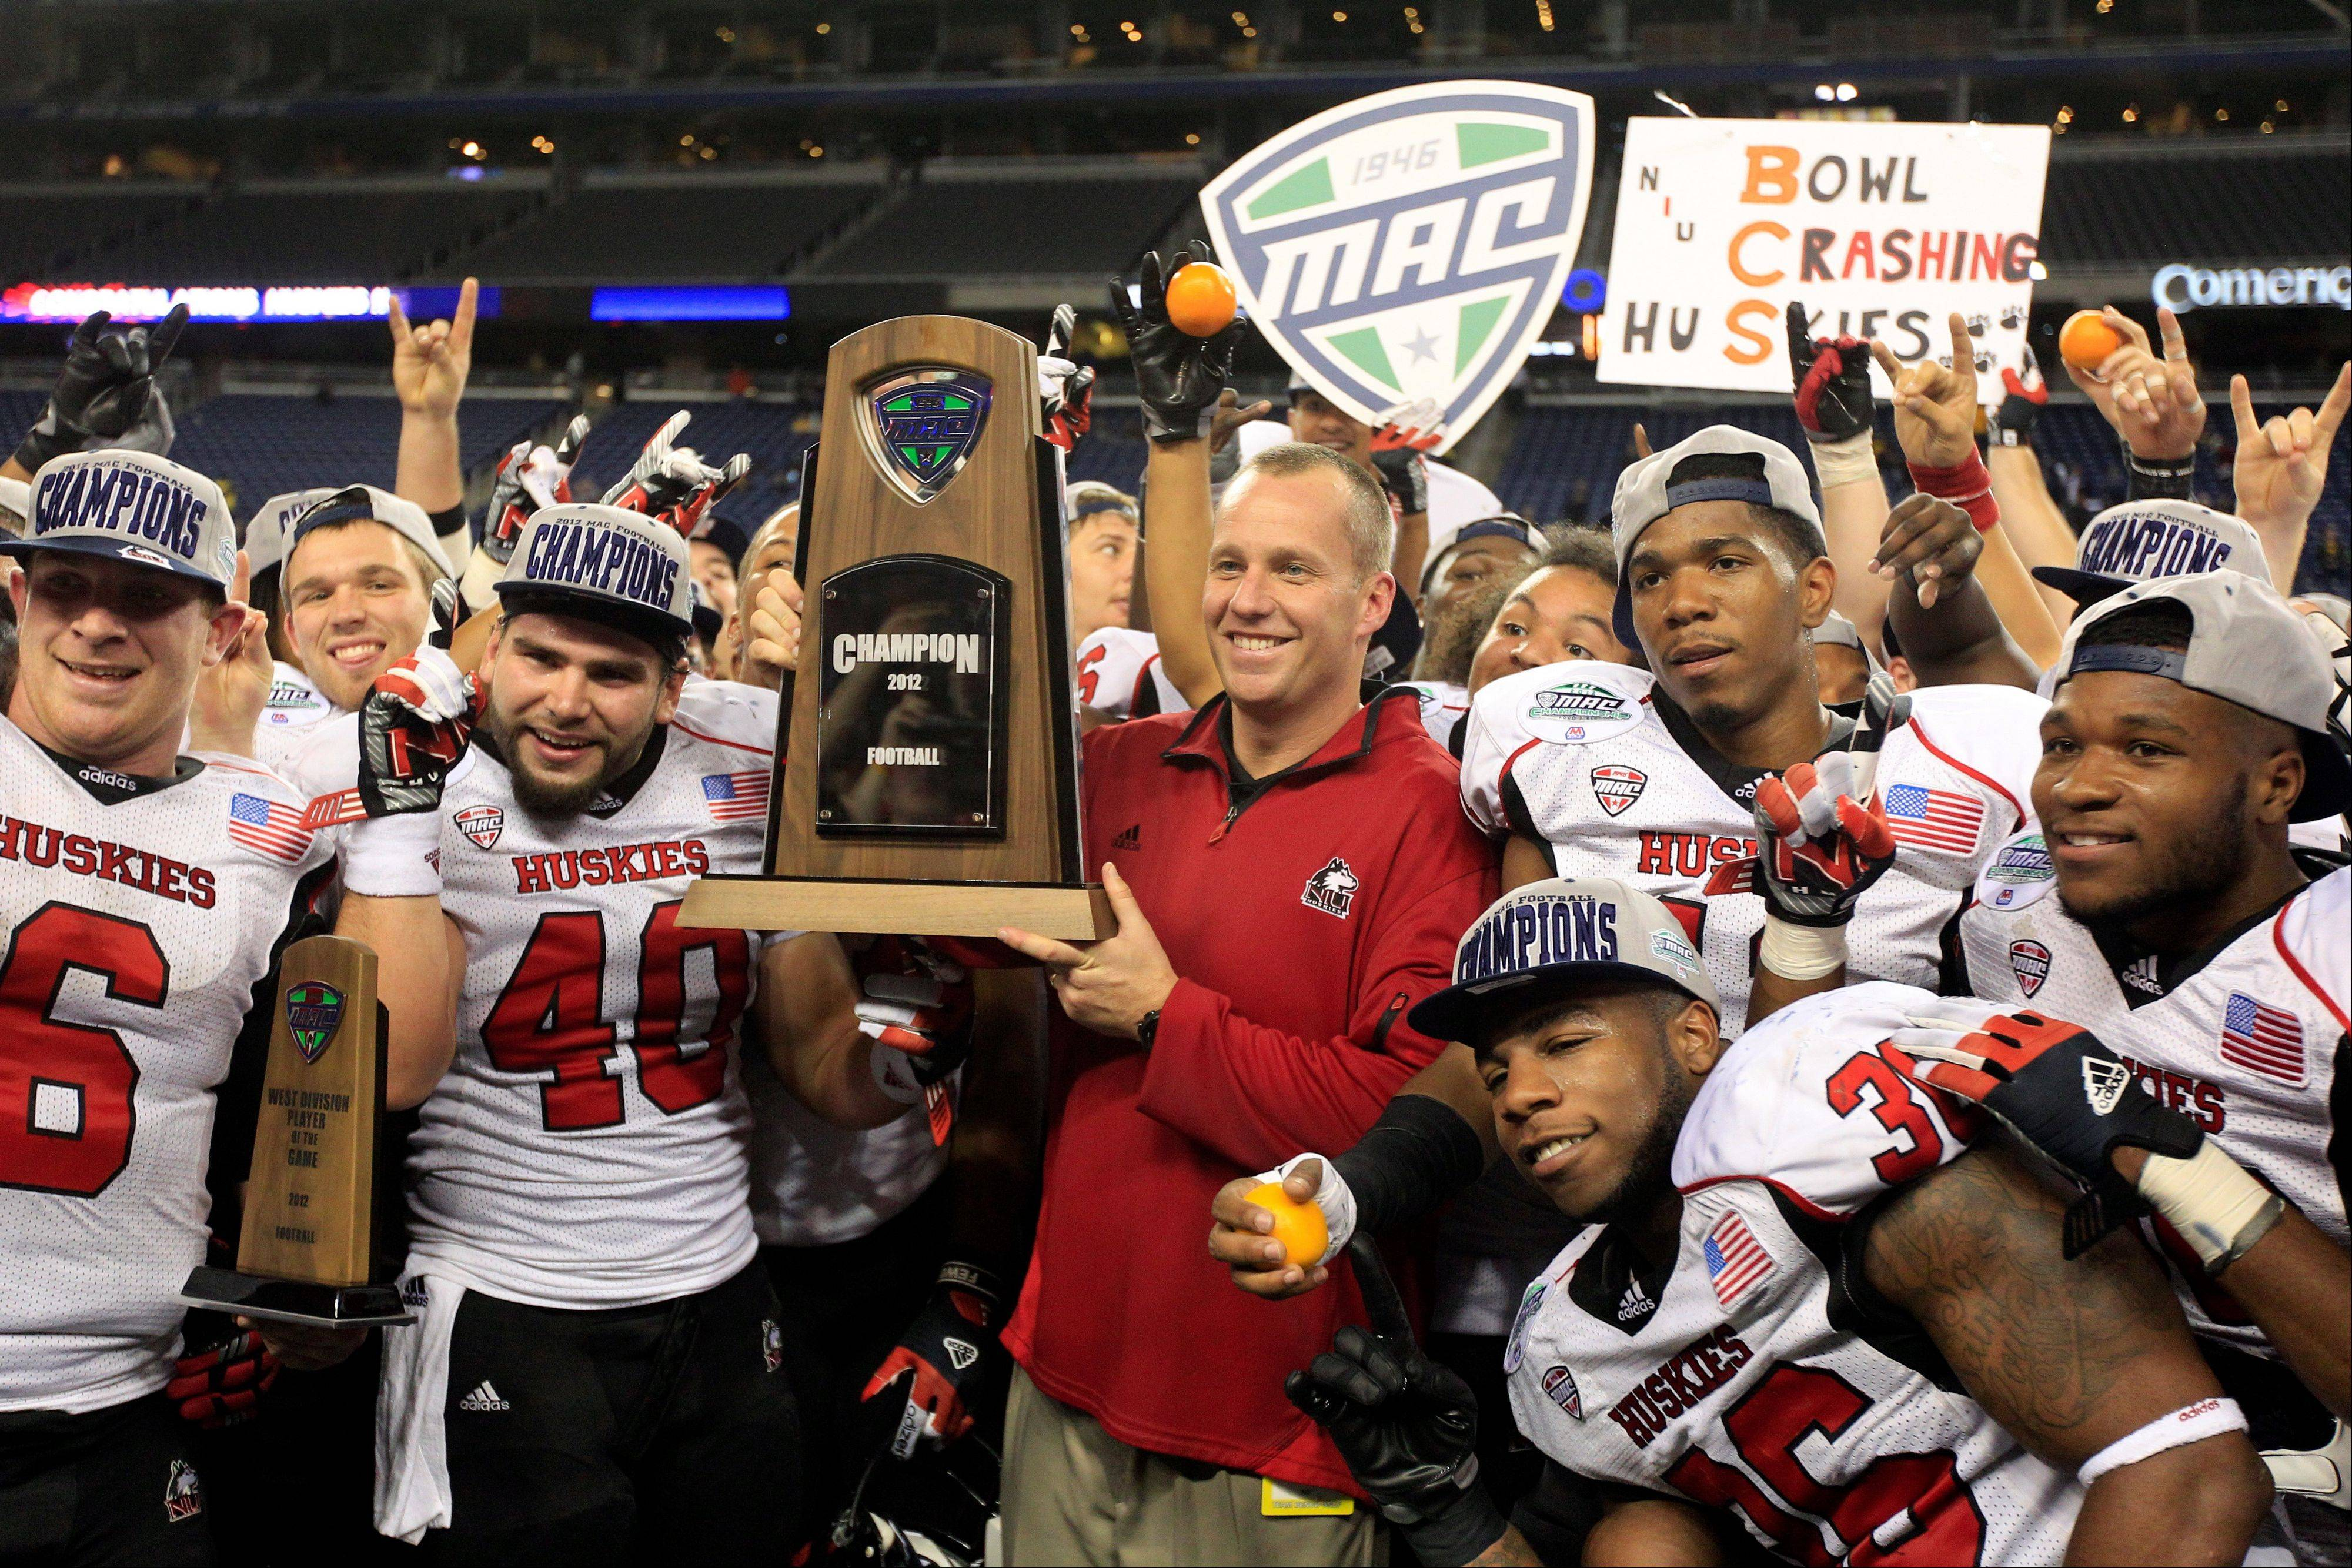 After a two-year run in which he went 23-4 as NIU's head coach, Dave Doeren decided to accept a job offer at North Carolina State.